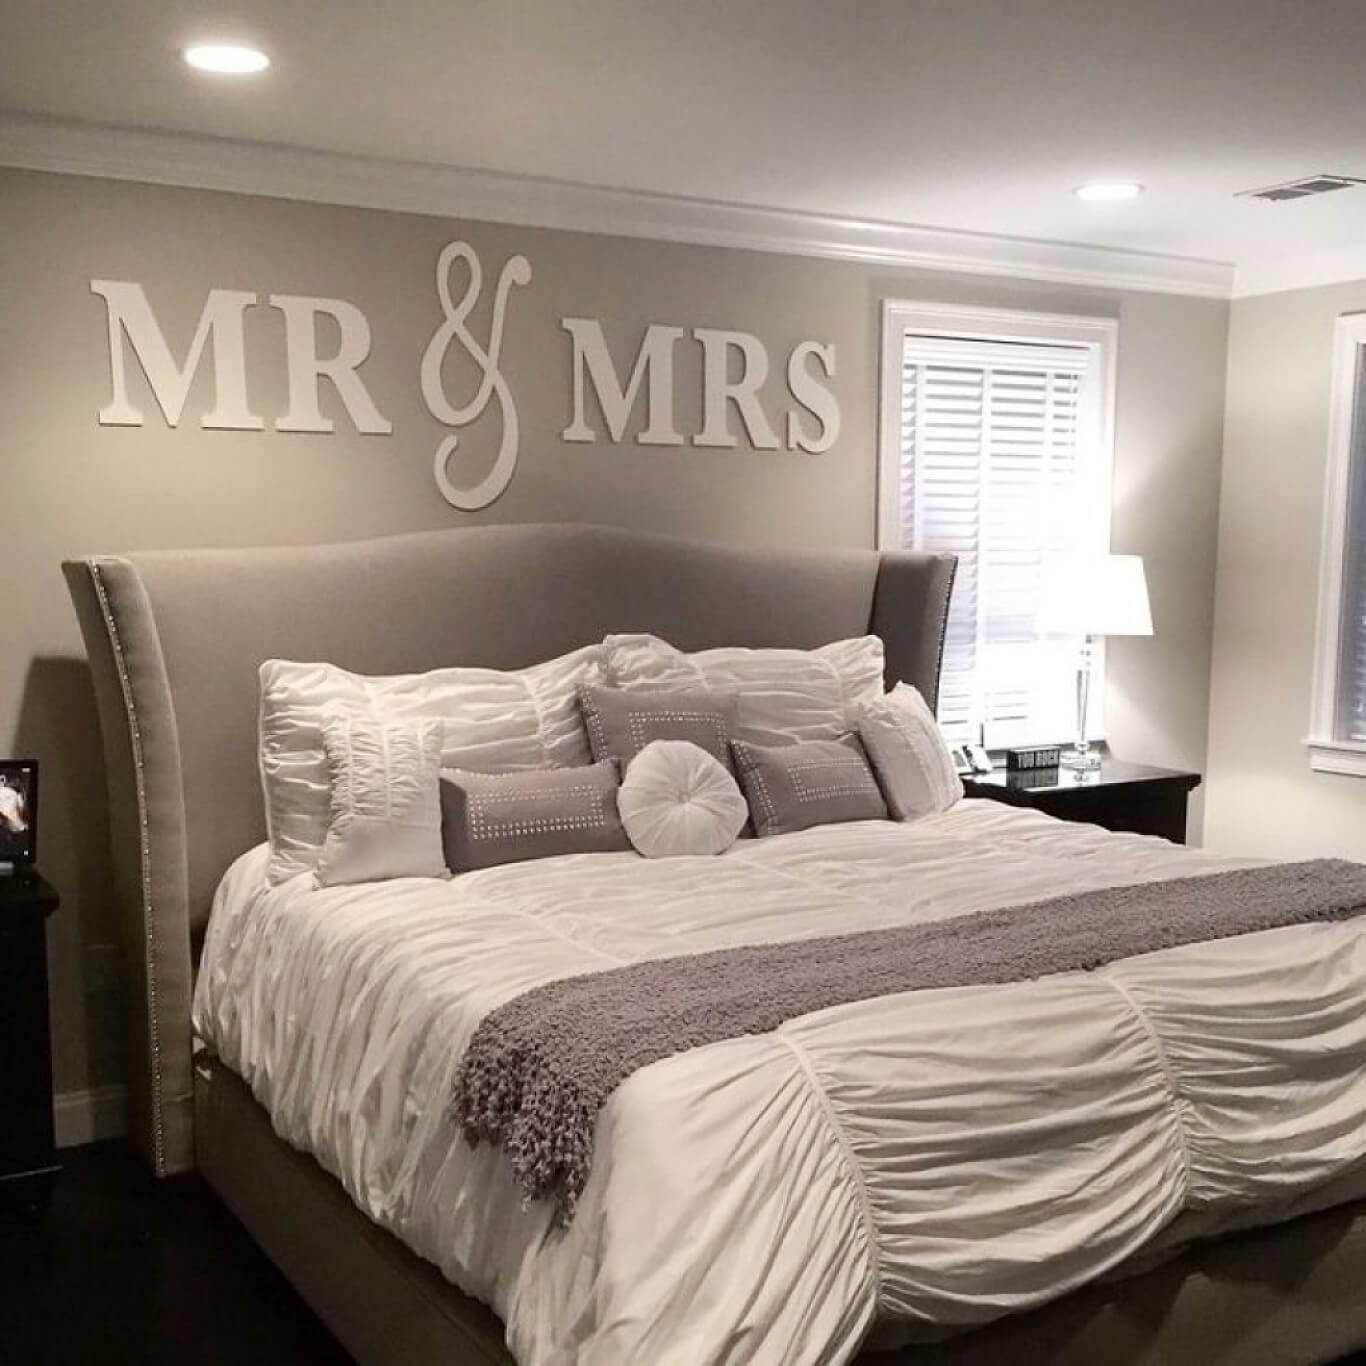 13+ Best Bedroom Wall Decor Ideas and Designs for 13